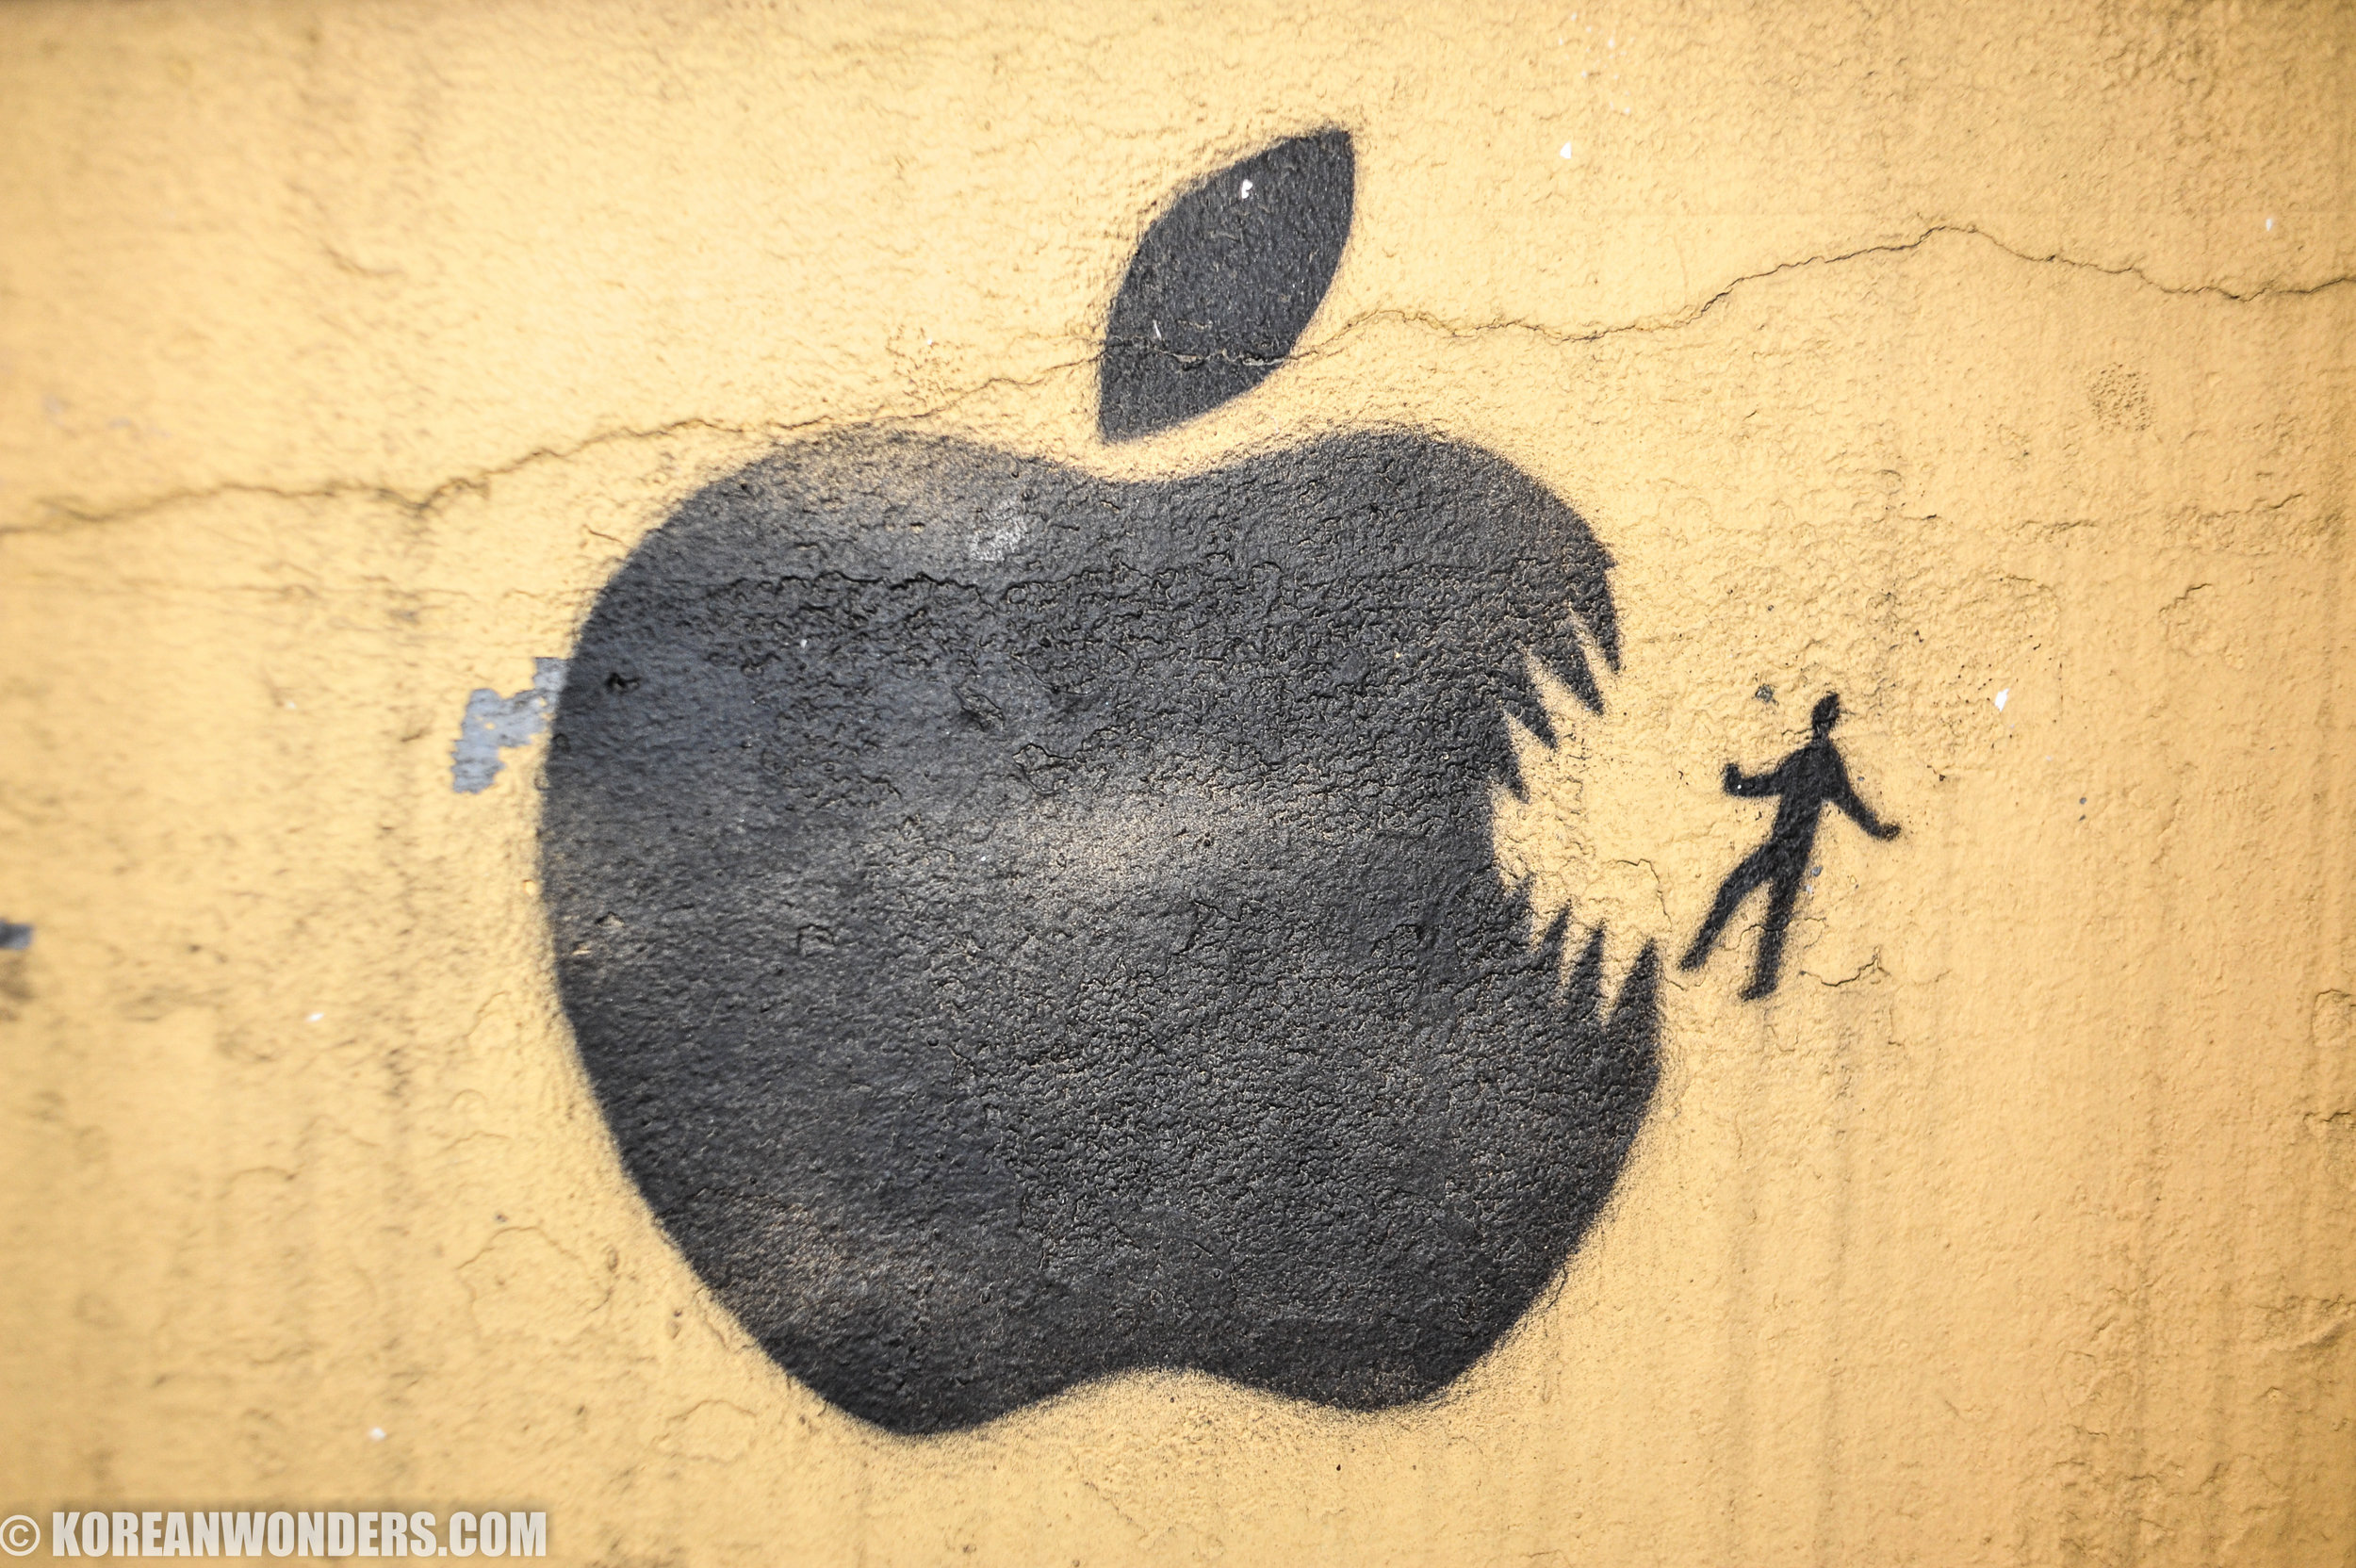 Apple eating man graffiti